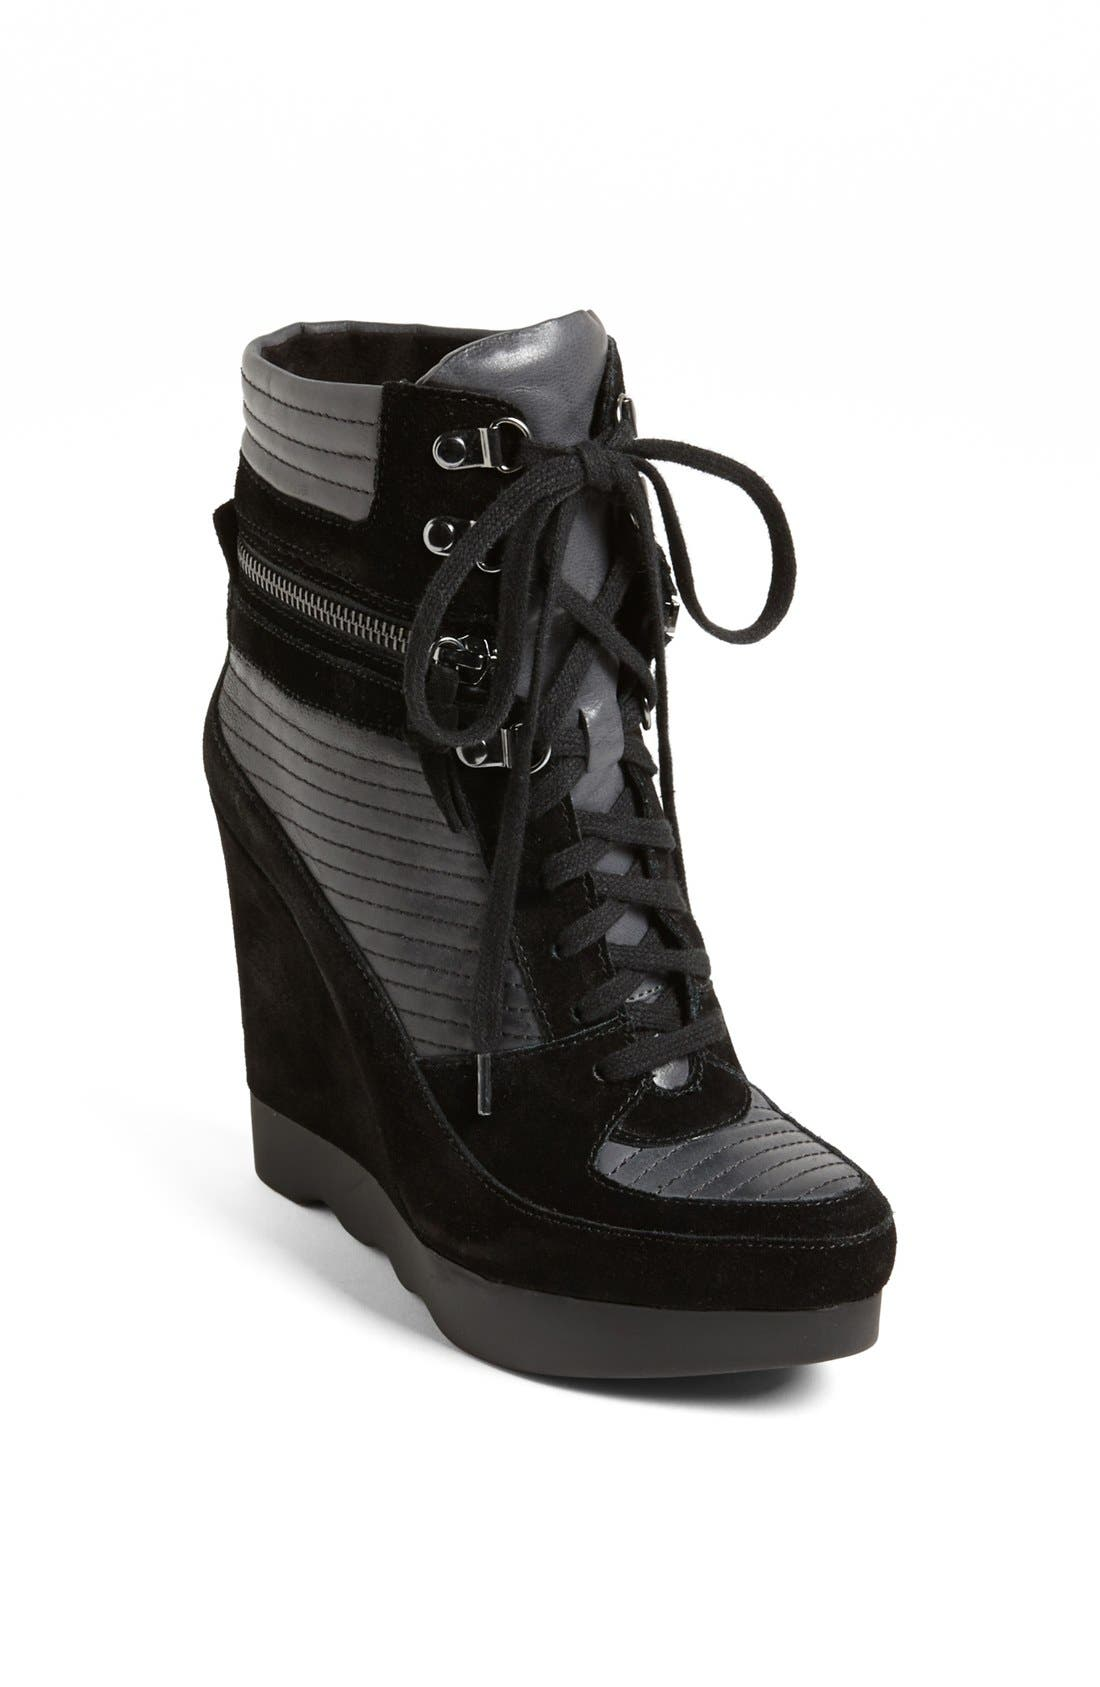 Main Image - French Connection 'Maata' Wedge Sneaker